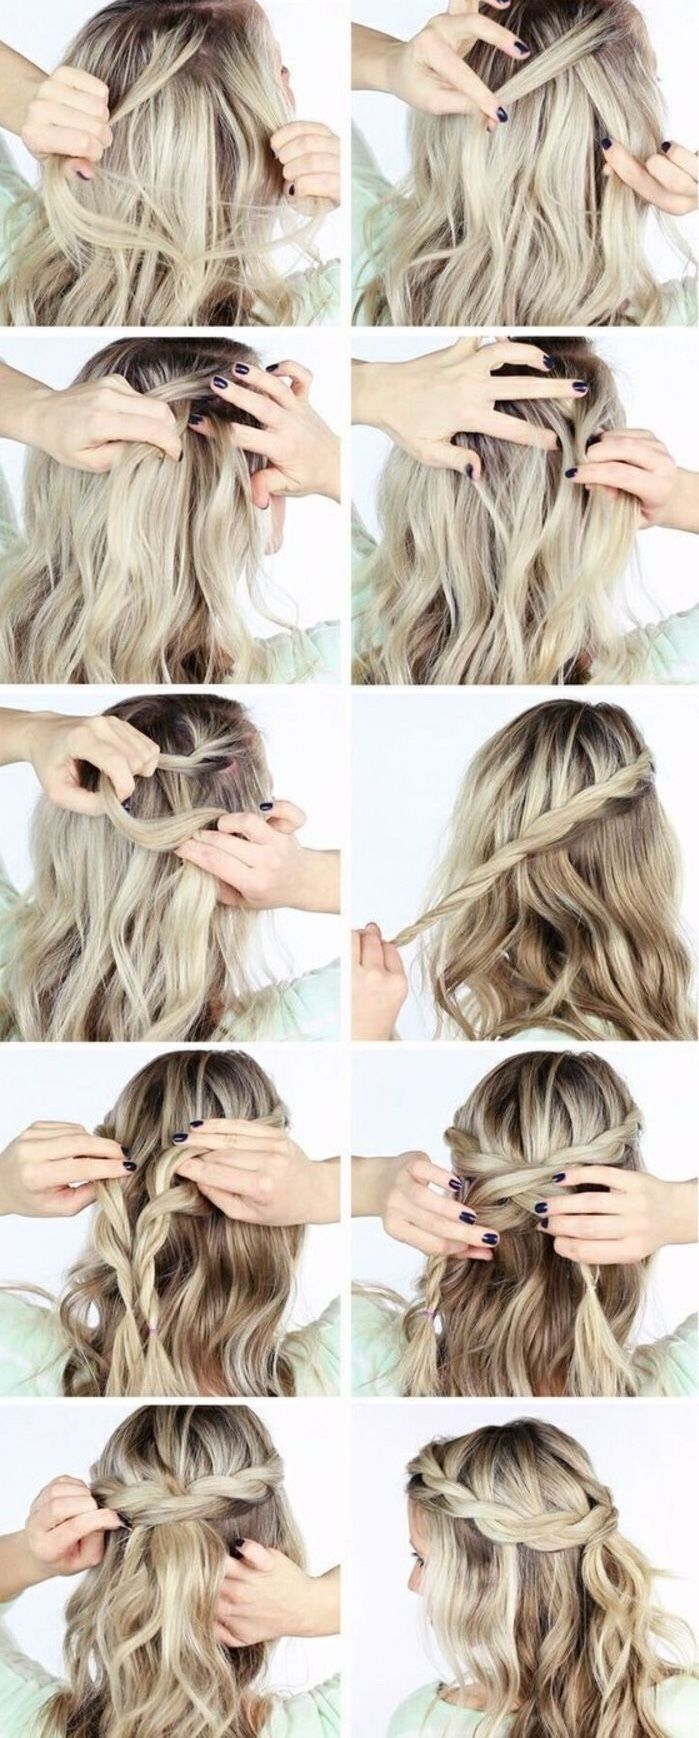 Pin by Kelly Raber on Hairstyles | Pinterest | Simple hairstyles